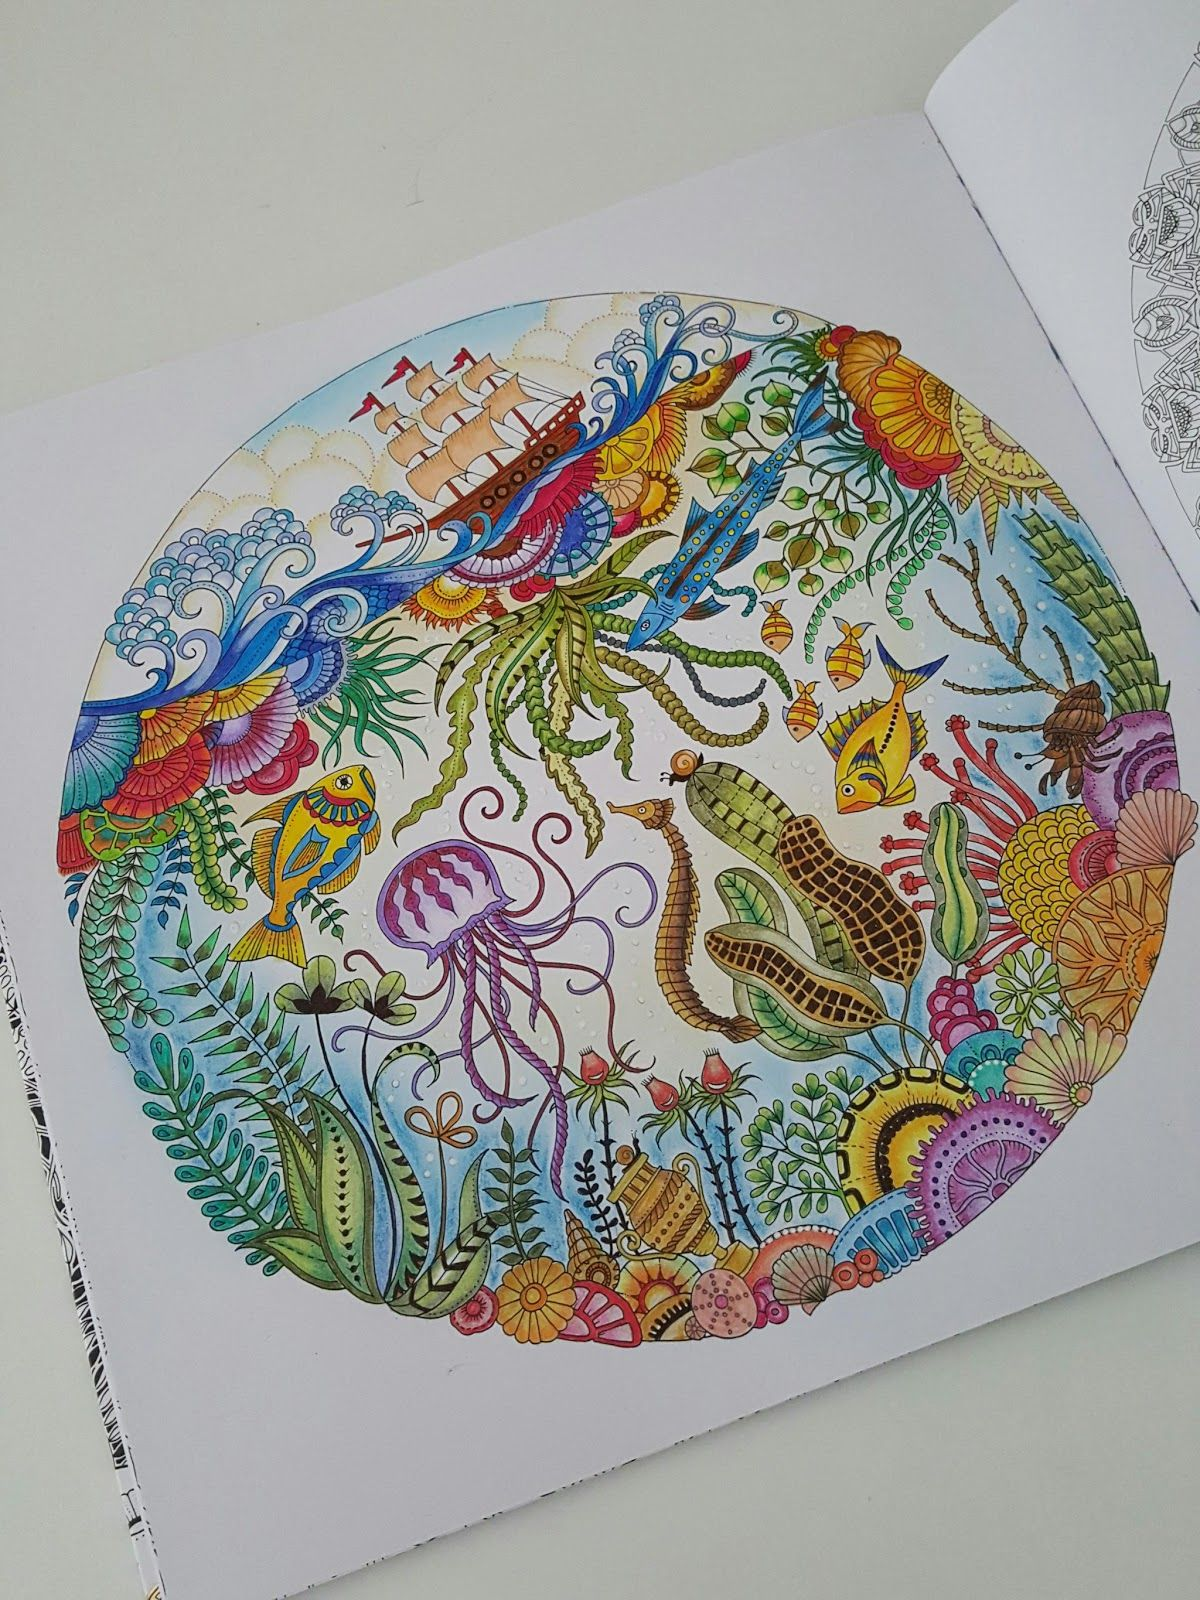 Using Faber Castell And Colleen 60 Double Tip Colour Pencils Second Photo Lost Ocean Coloring Book Johanna Basford Coloring Book Johanna Basford Lost Ocean